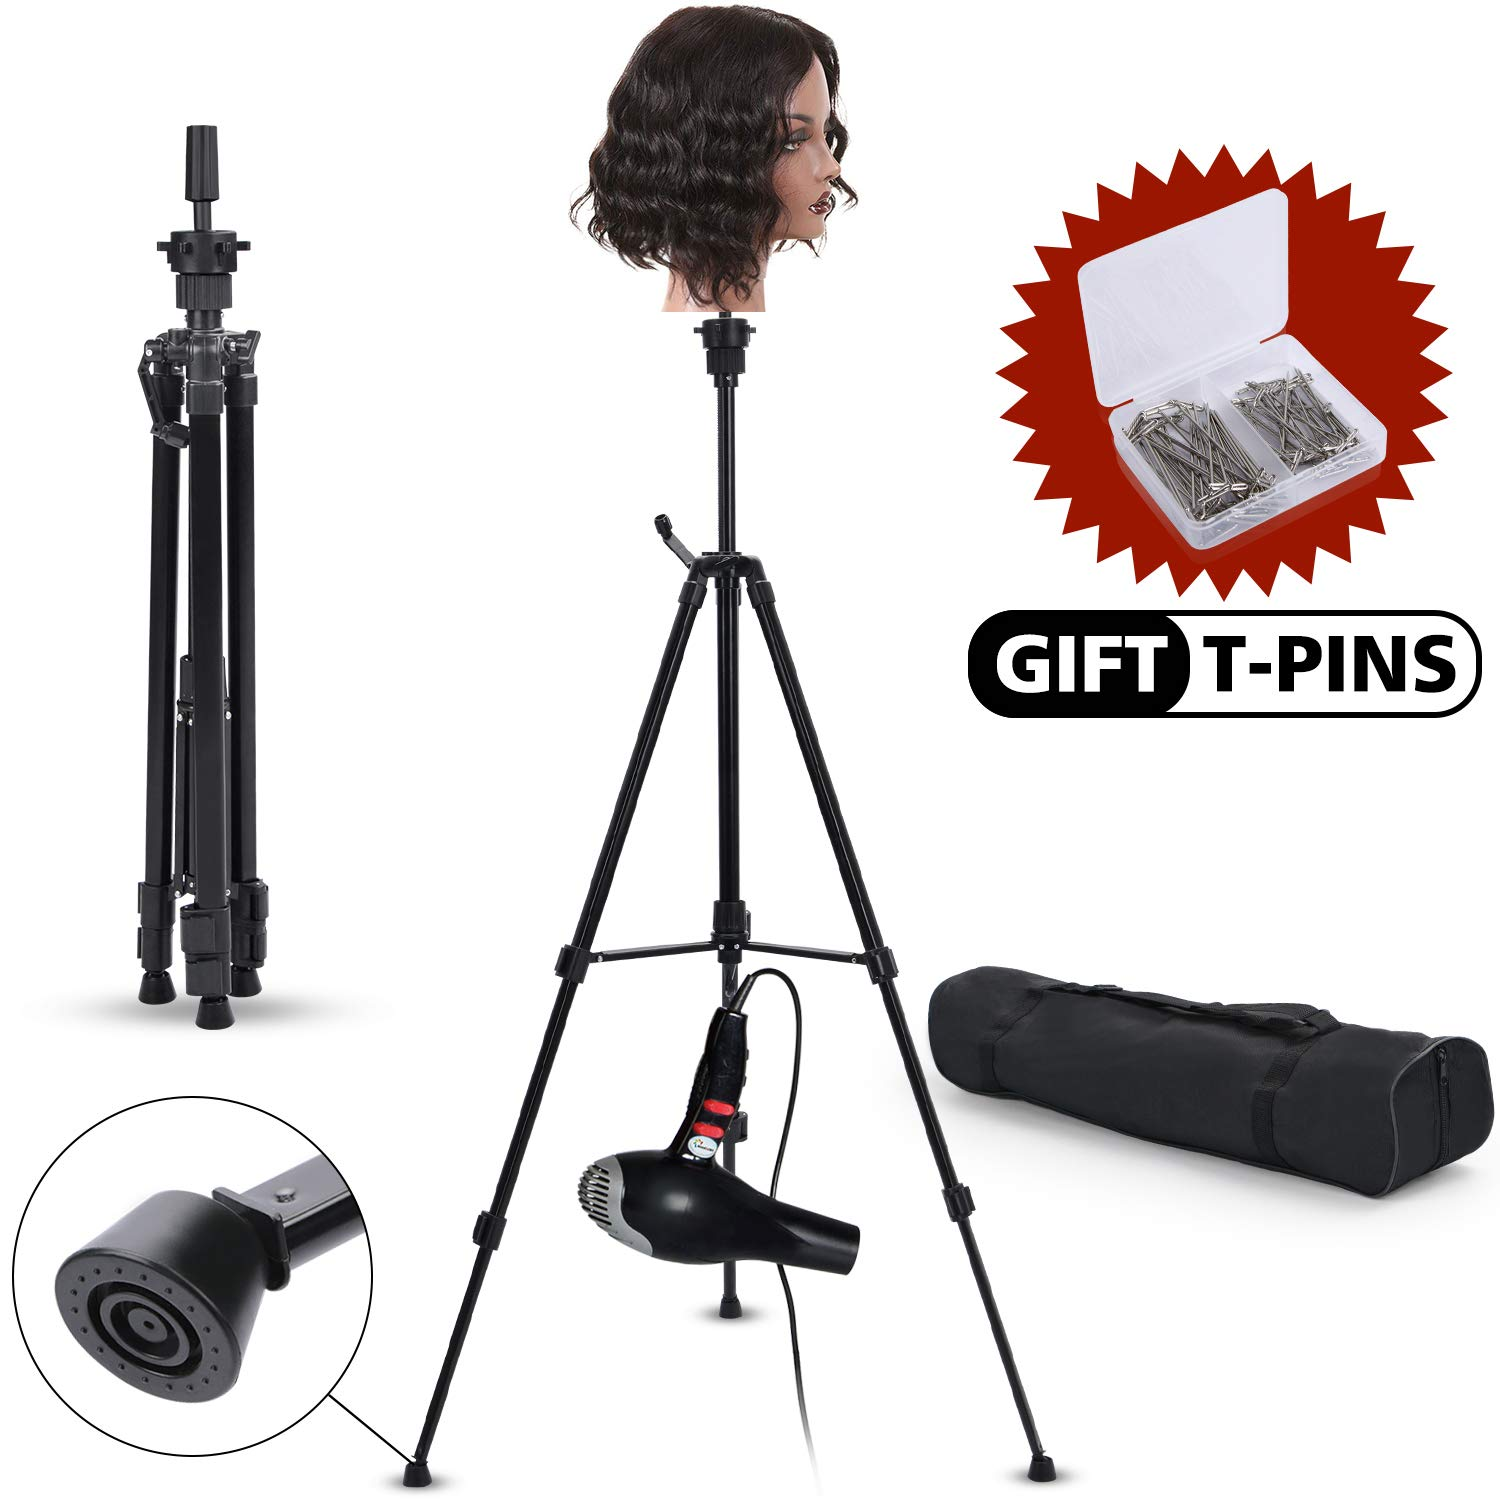 Klvied Metal Adjustable Tripod Wig Stand, Mannequin Head Holder Stand, Canvas Block Wig Head Stand for Hairdryer, Hair Salon, Hairdressing, Cosmetology Training with T-Pins, Portable Travel Bag, Black